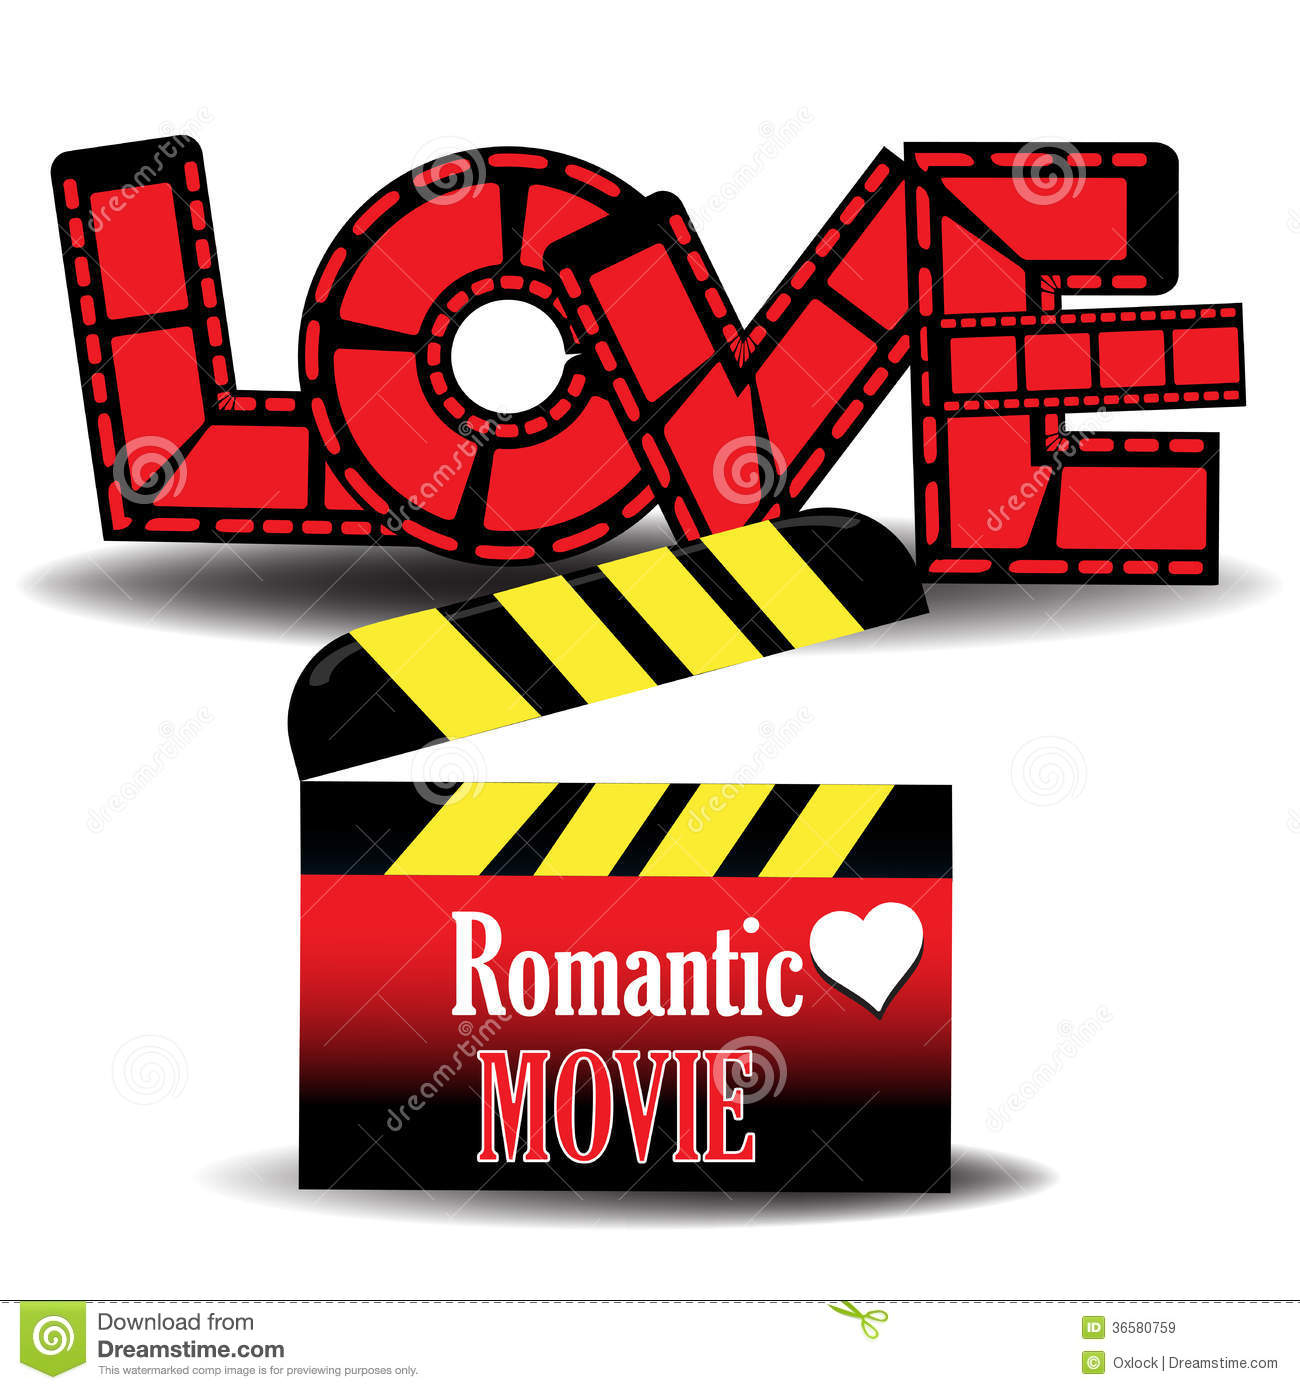 Romantic movie stock vector. Illustration of abstract ...